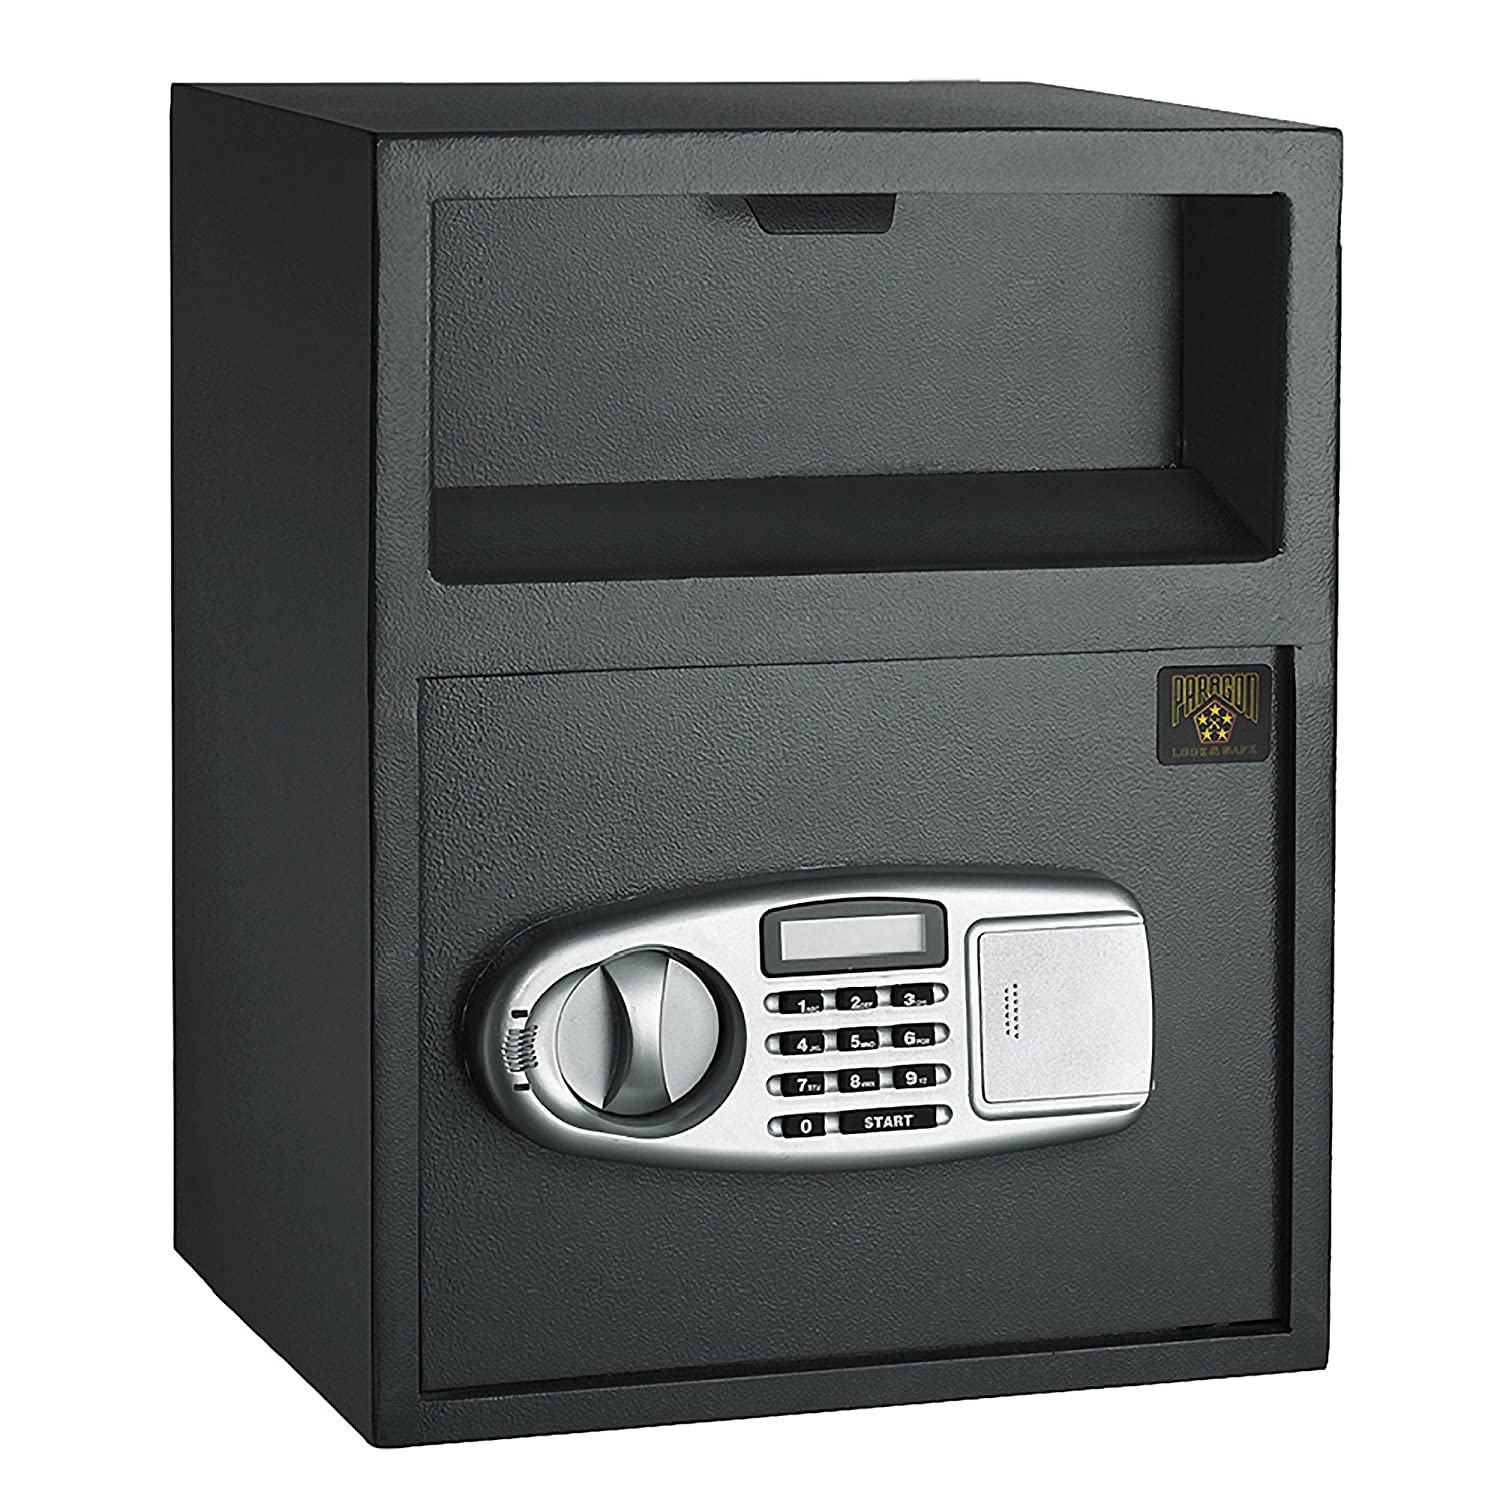 Image of 7925 Paragon Lock & Safe Digital Depository Front Load Cash Vault Drop Safe Box Home Improvements